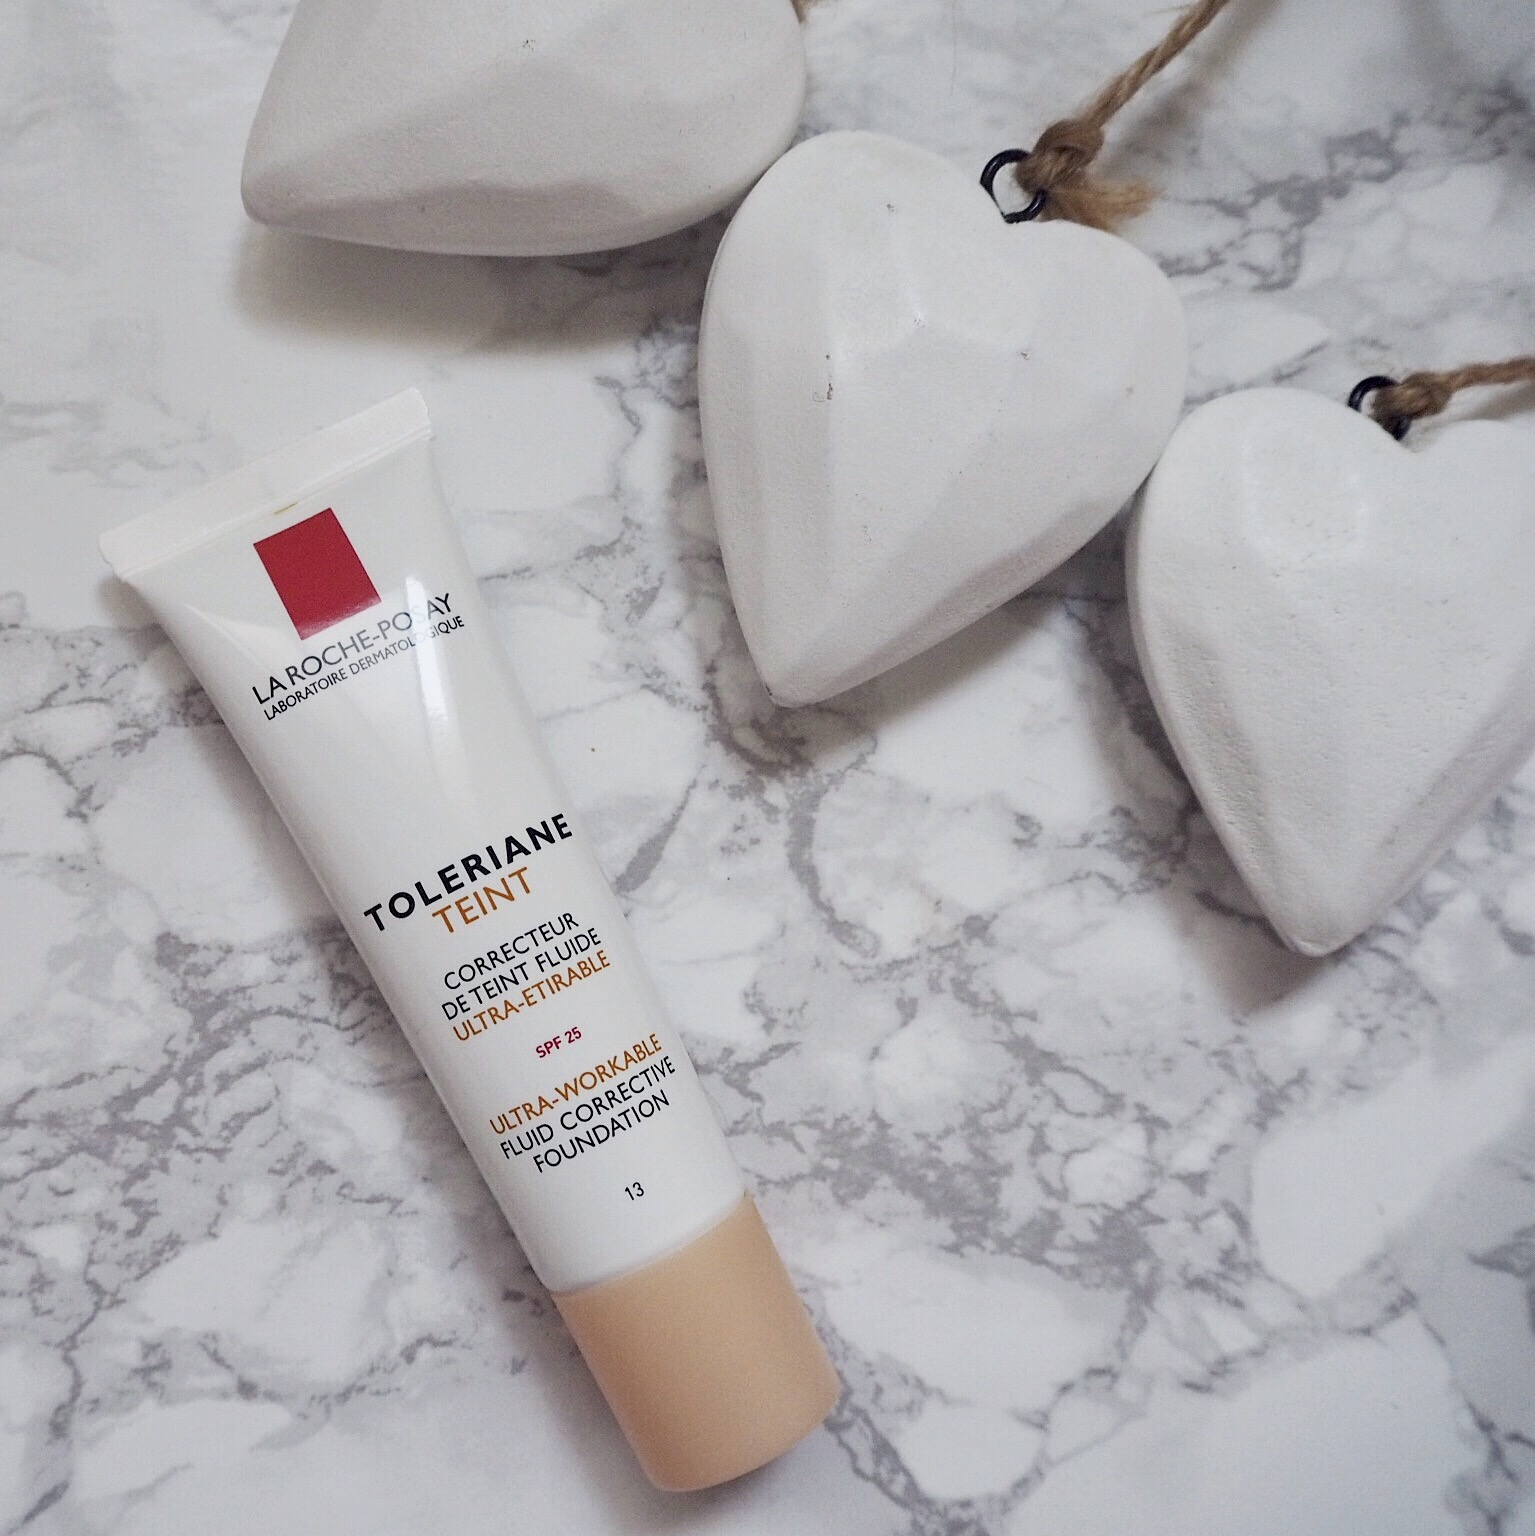 La Roche-Posay Toleriane Review – As told by Jade